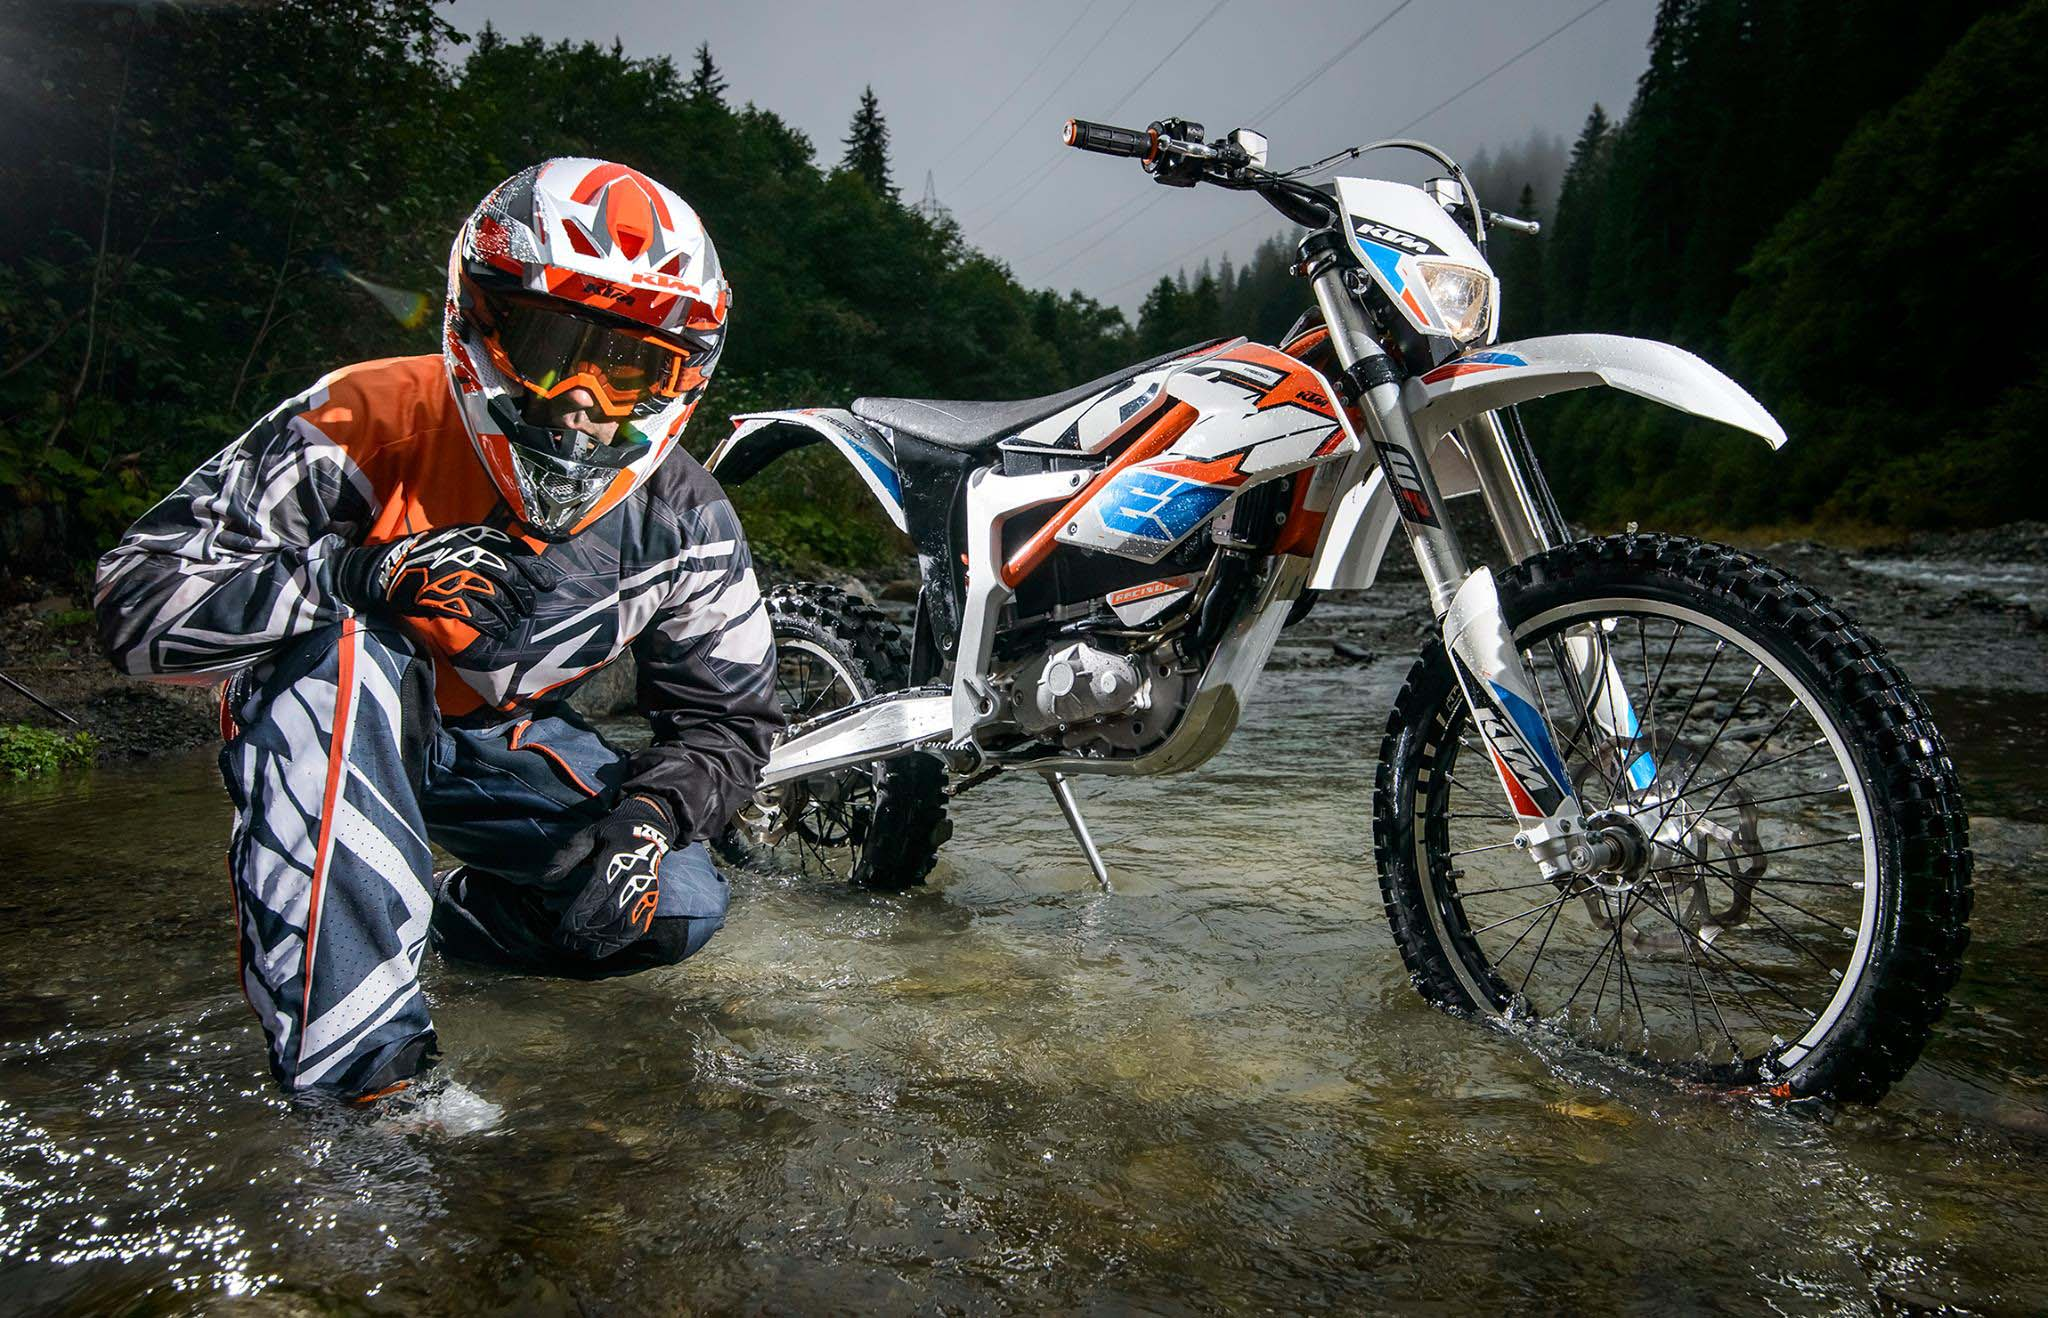 Ktm Freeride E Sm >> Electric: The KTM Freeride E is Finally Ready for Primetime - Asphalt & Rubber